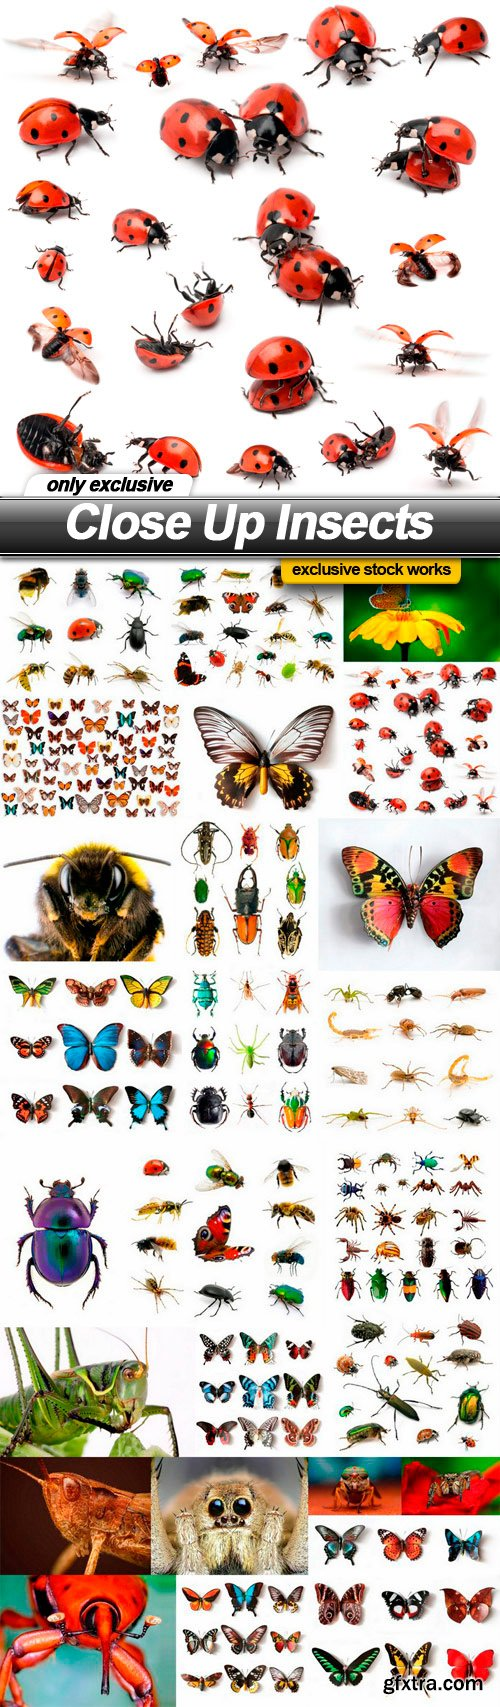 Close Up Insects - 25 UHQ JPEG